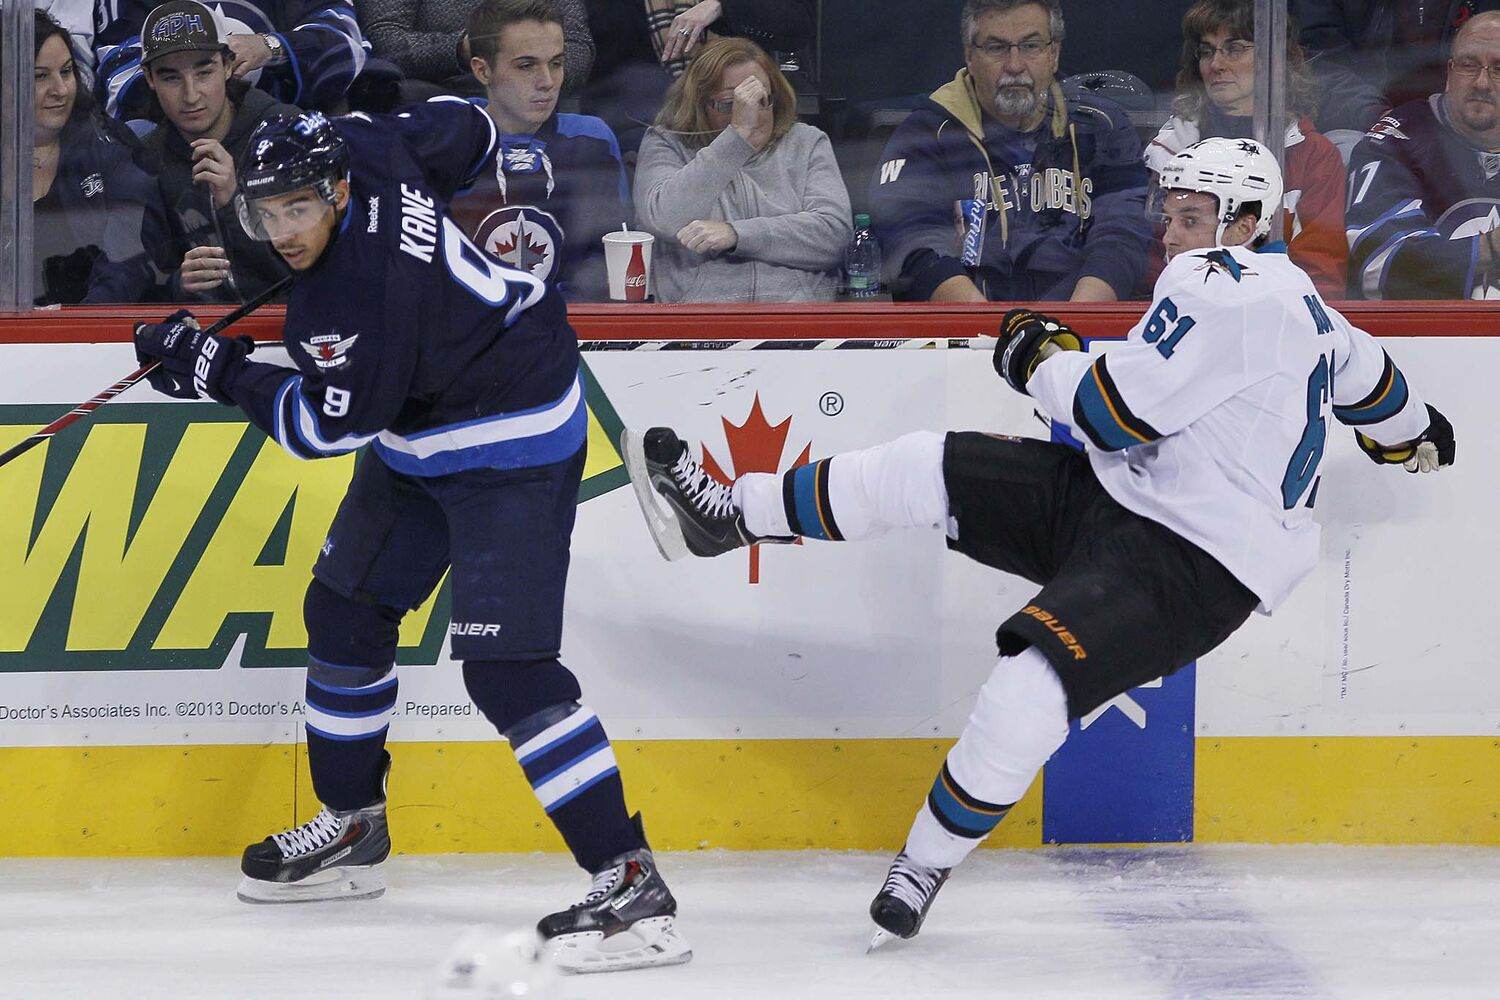 Winnipeg Jets' Evander Kane (9) checks San Jose Sharks' Justin Braun (61) during the first period. (JOHN WOODS / WINNIPEG FREE PRESS)